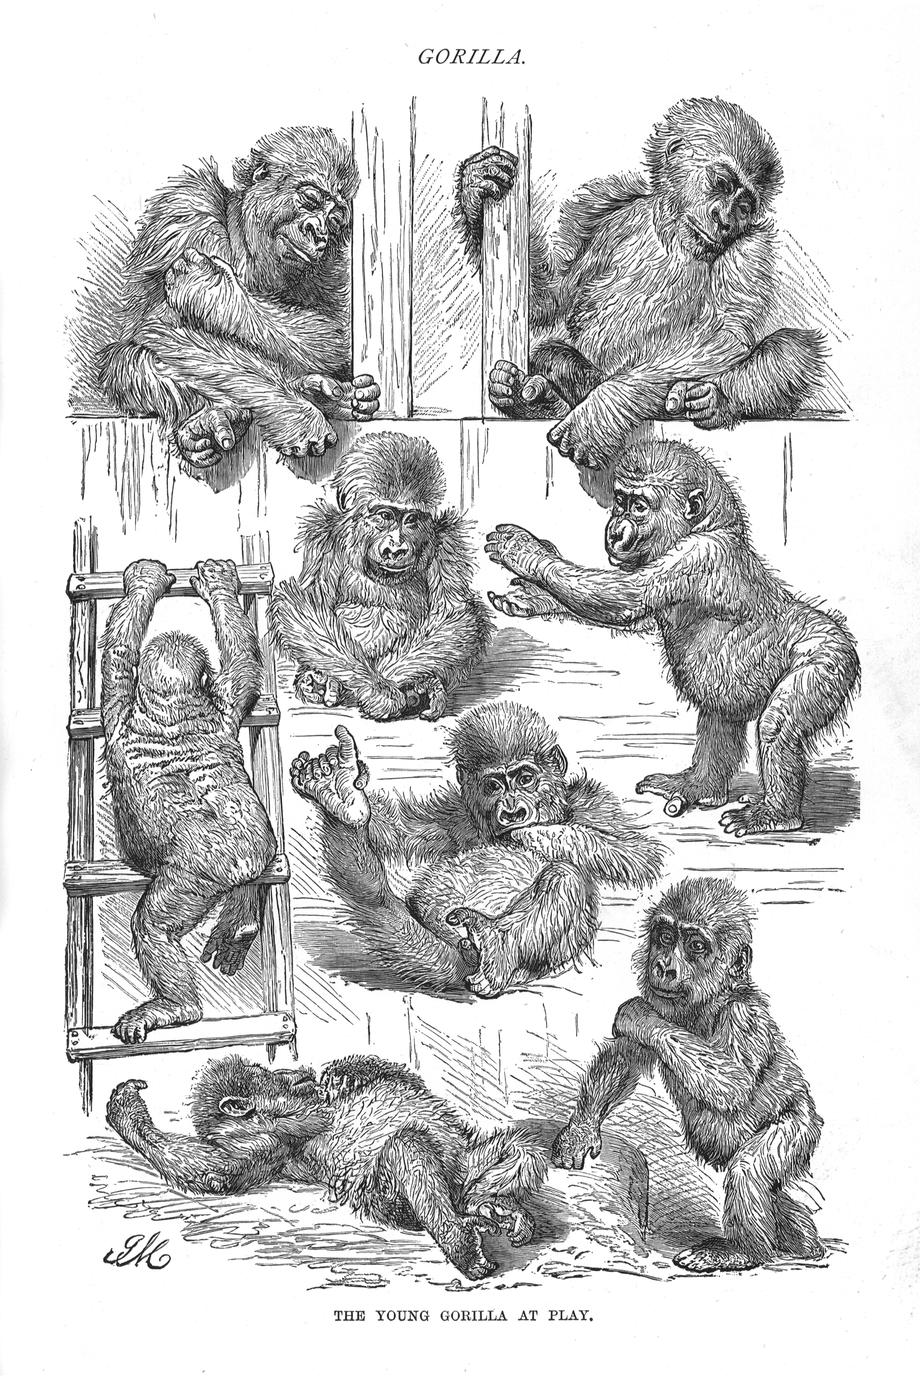 The Young Gorilla at Play